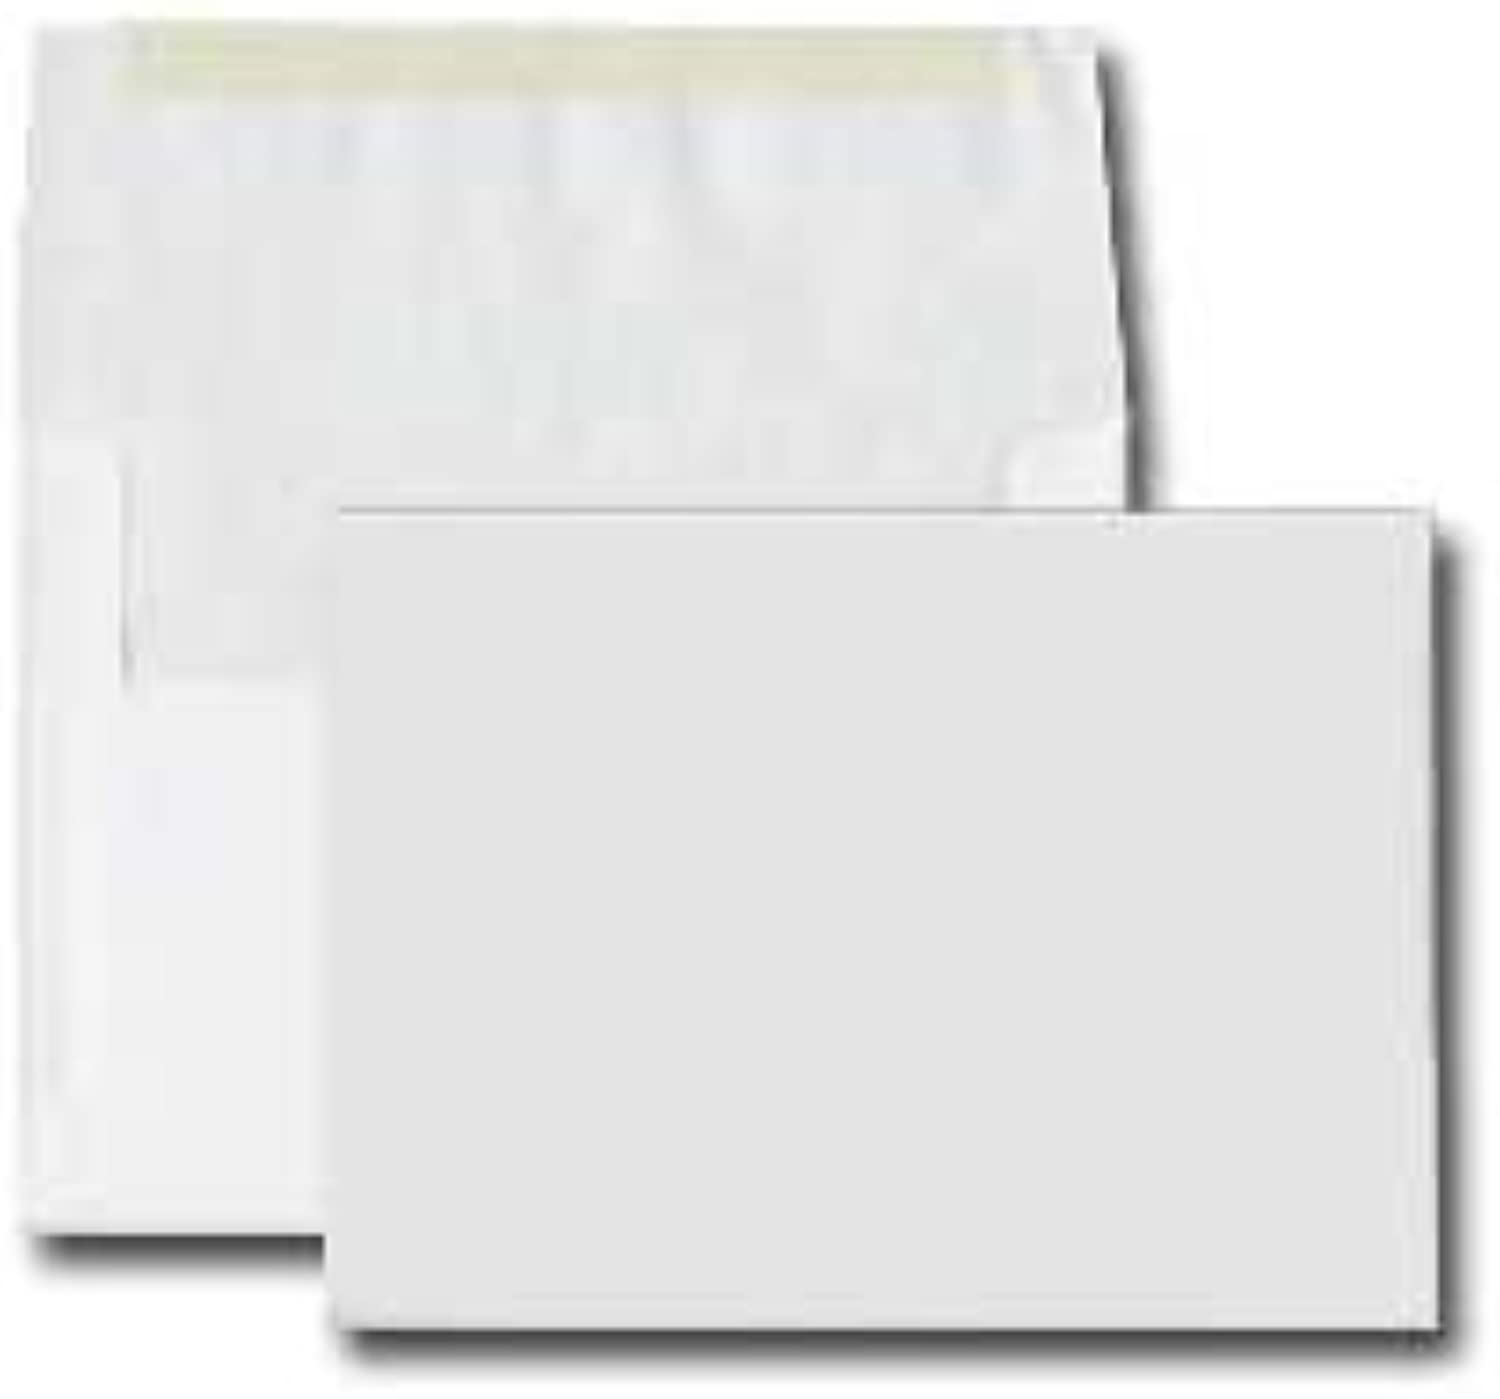 A7 Invitation Envelope - 24  Weiß (5 1 4 x 7 1 4) - Announcement Envelope Series (Box of 1000) by Office Express B0141M56A6   Professionelles Design